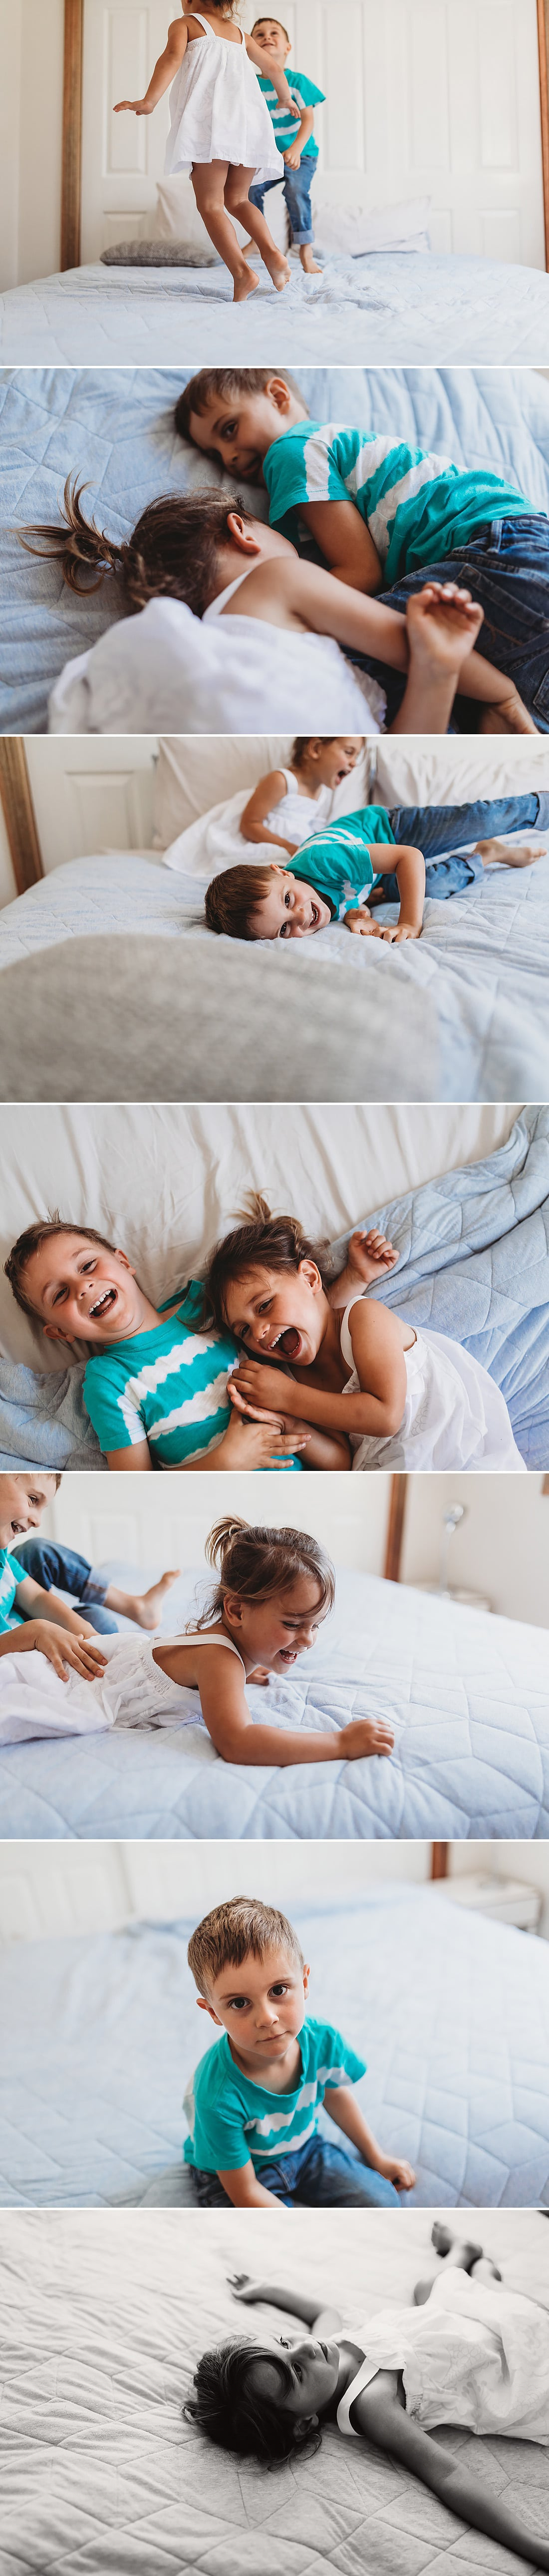 In-home-lifestyle-family-photography-sydney-sutherland-shire